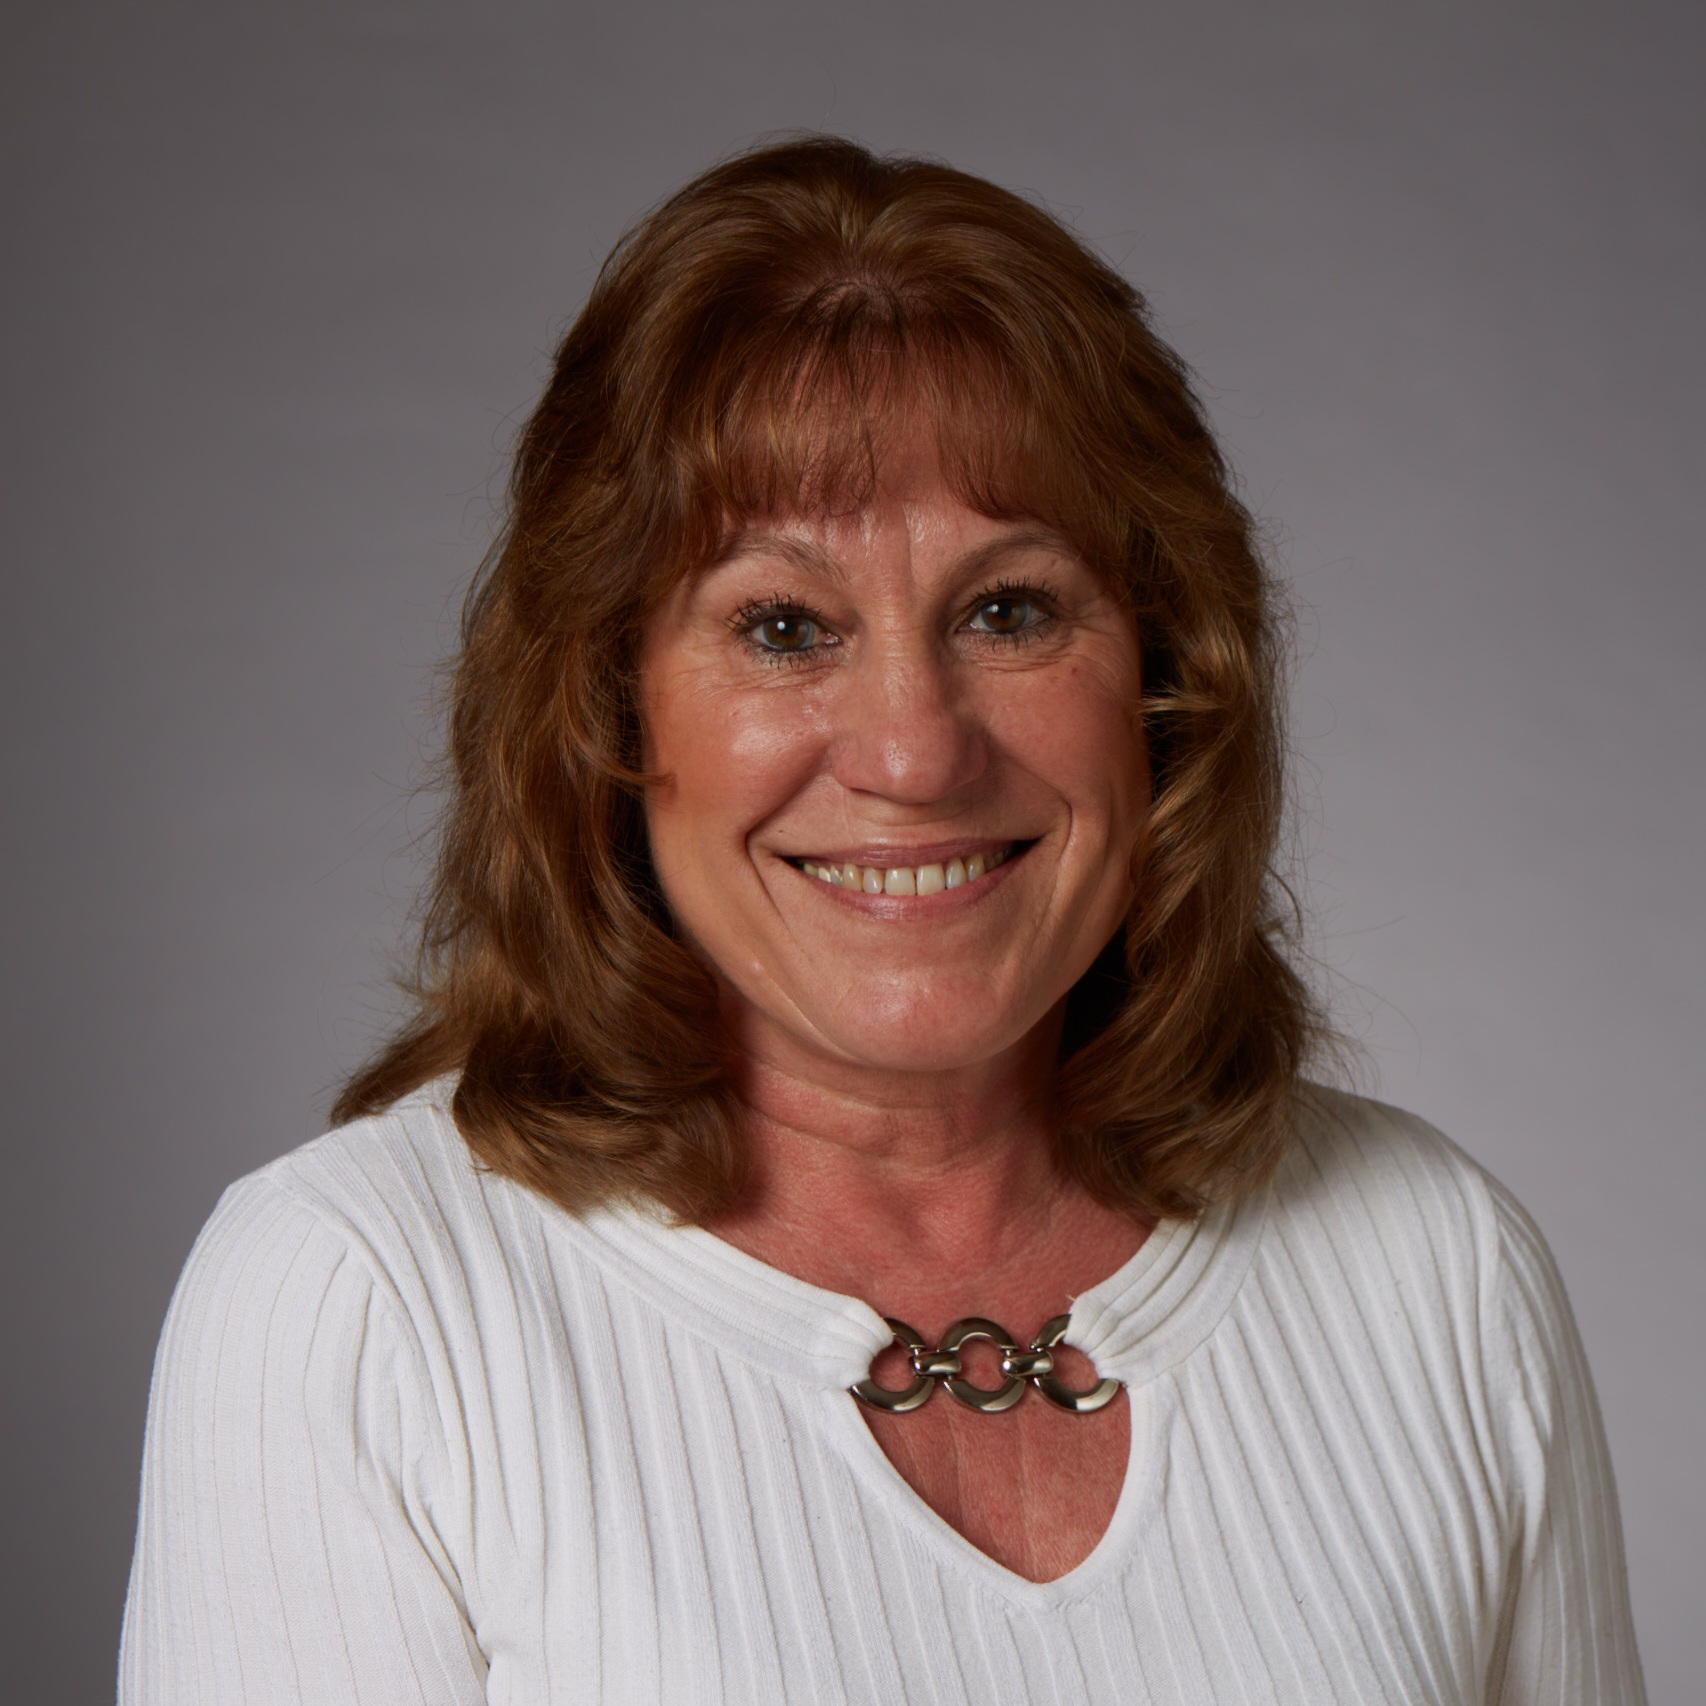 Carrie Schillinger, Accounts Payable - c.schillinger@hanfordarc.comCarrie has been with Hanford since 1998. Beginning as an Administrative Assistant and working closely in our Estimating department then transitioning to our Accounts Payable and Compliance department, Carrie has become very knowledgeable in many aspects of Hanford and the companies history.